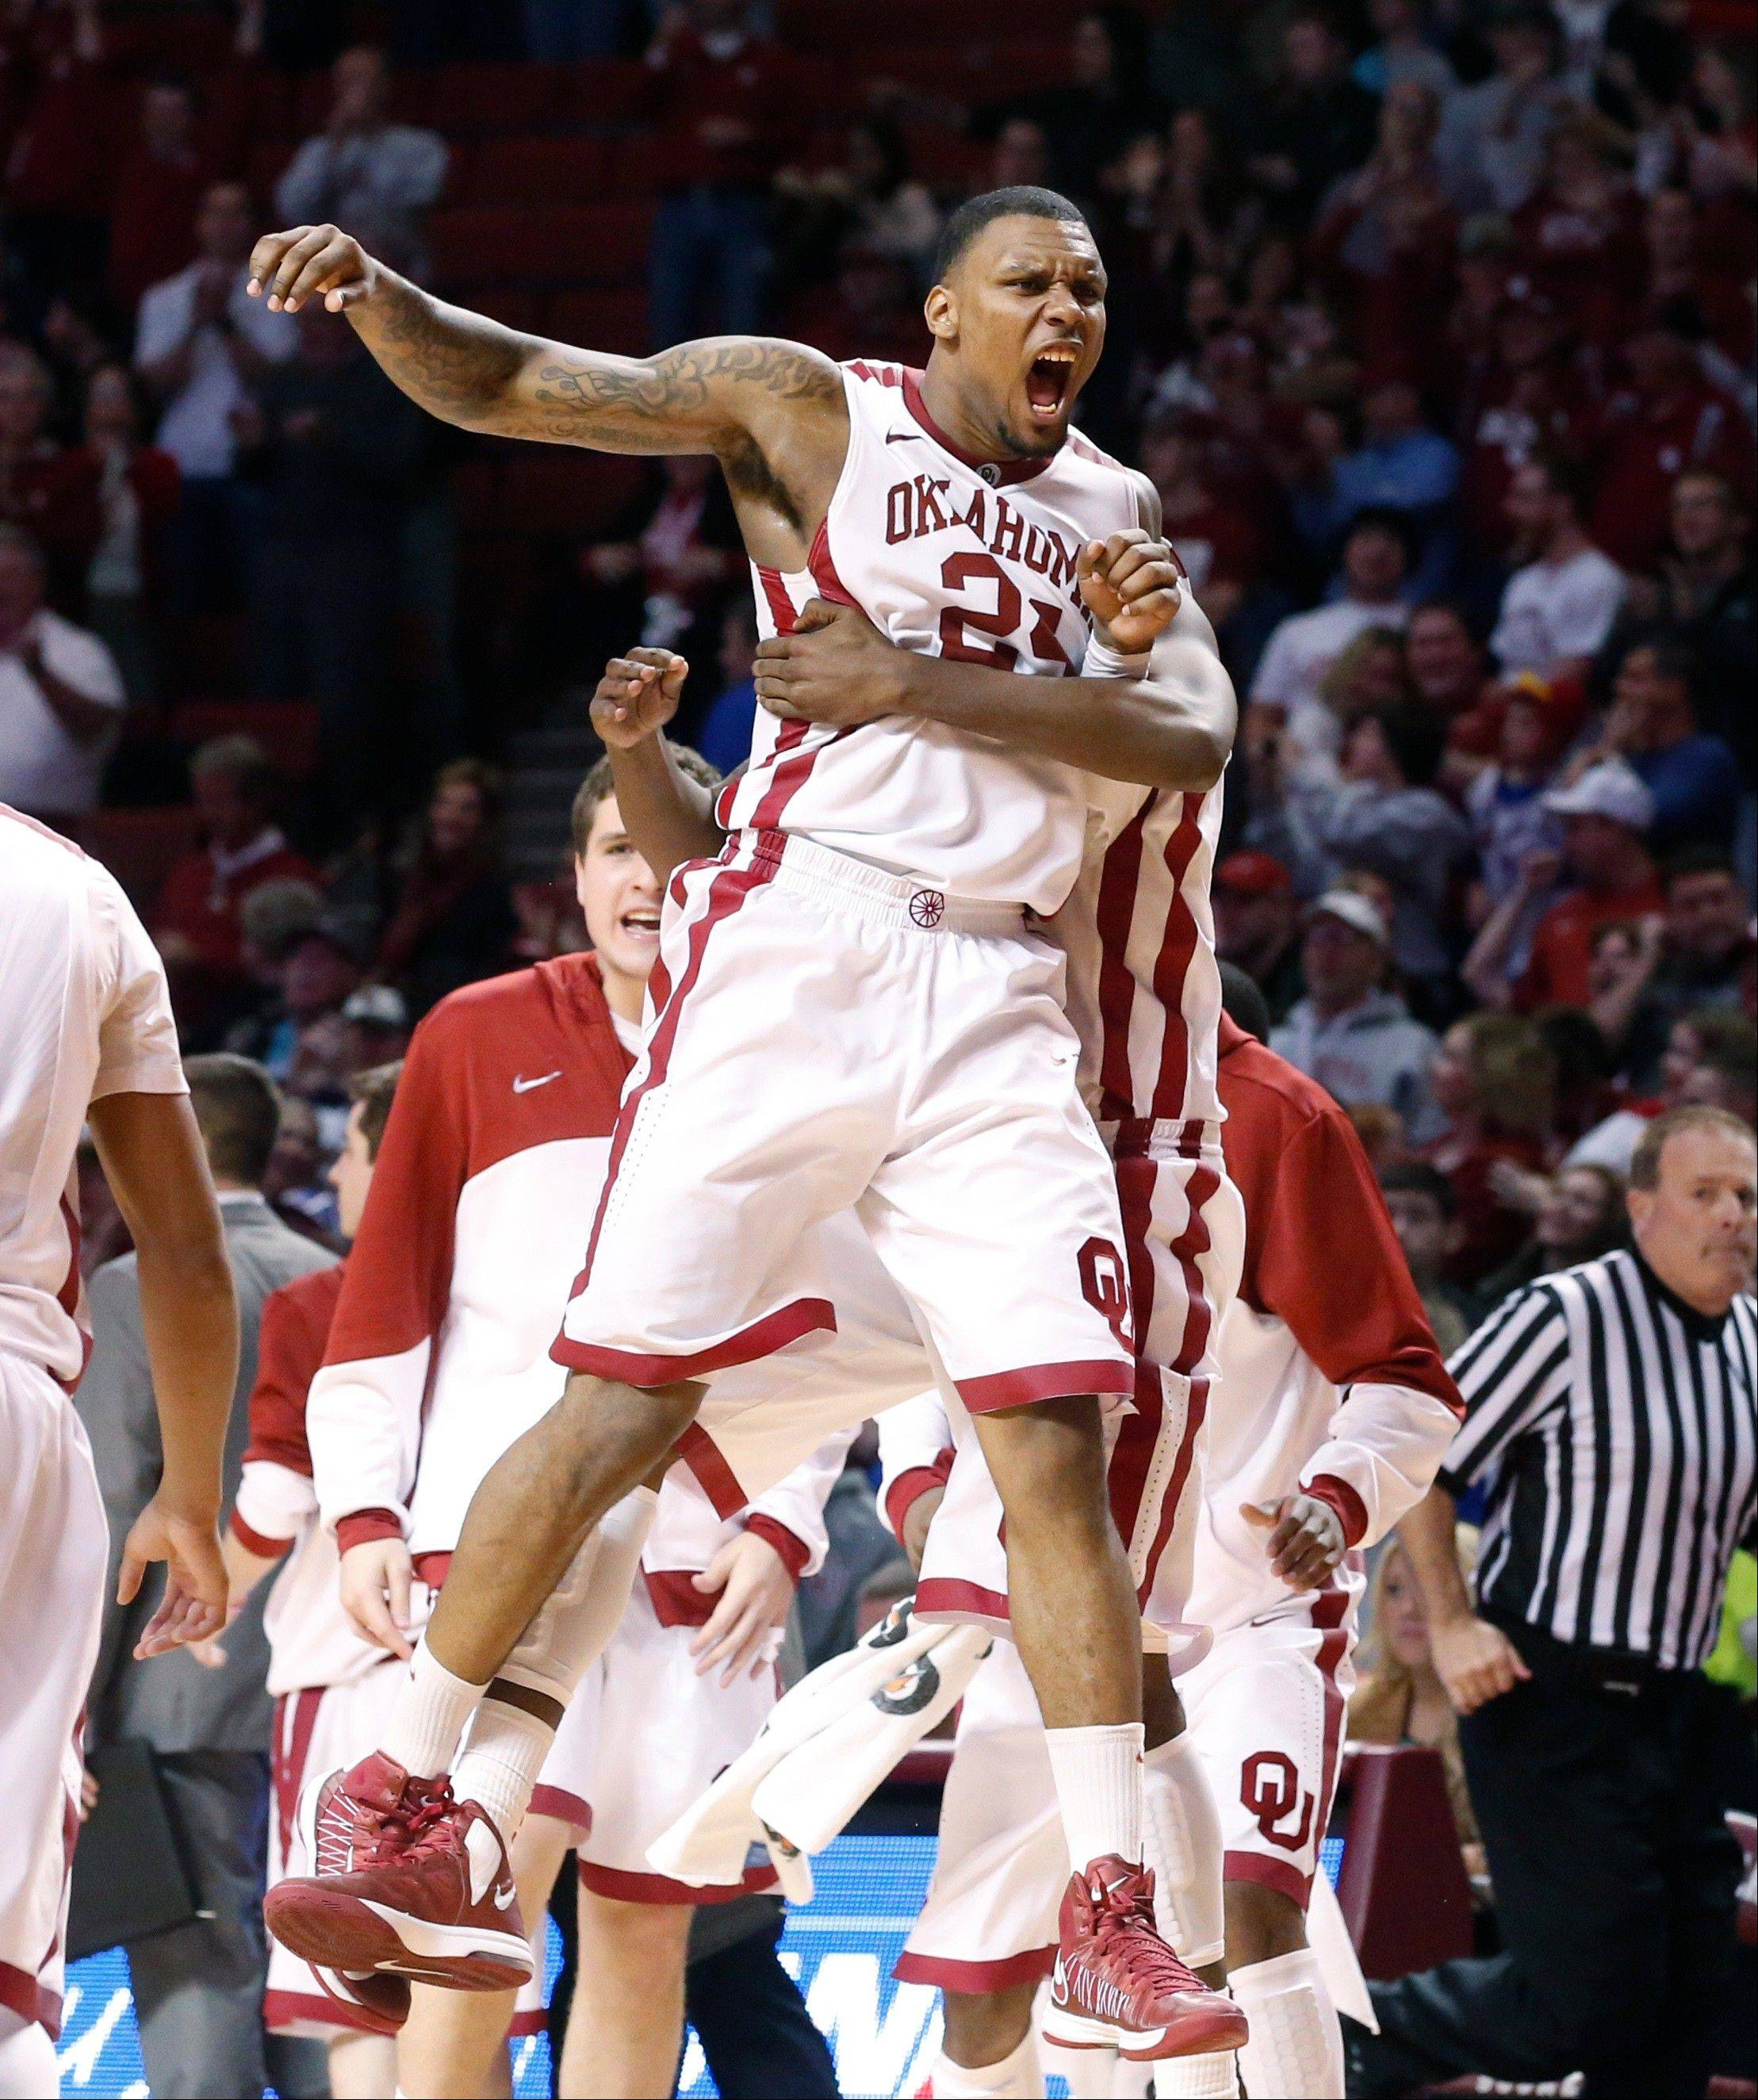 Oklahoma forward Romero Osby (24) jumps into the arms of teammate Andrew Fitzgerald, rear, at the end of the game as Oklahoma defeated Kansas 72-66 in an NCAA college basketball game in Norman, Okla., Saturday, Feb. 9, 2013. (AP Photo/Sue Ogrocki)